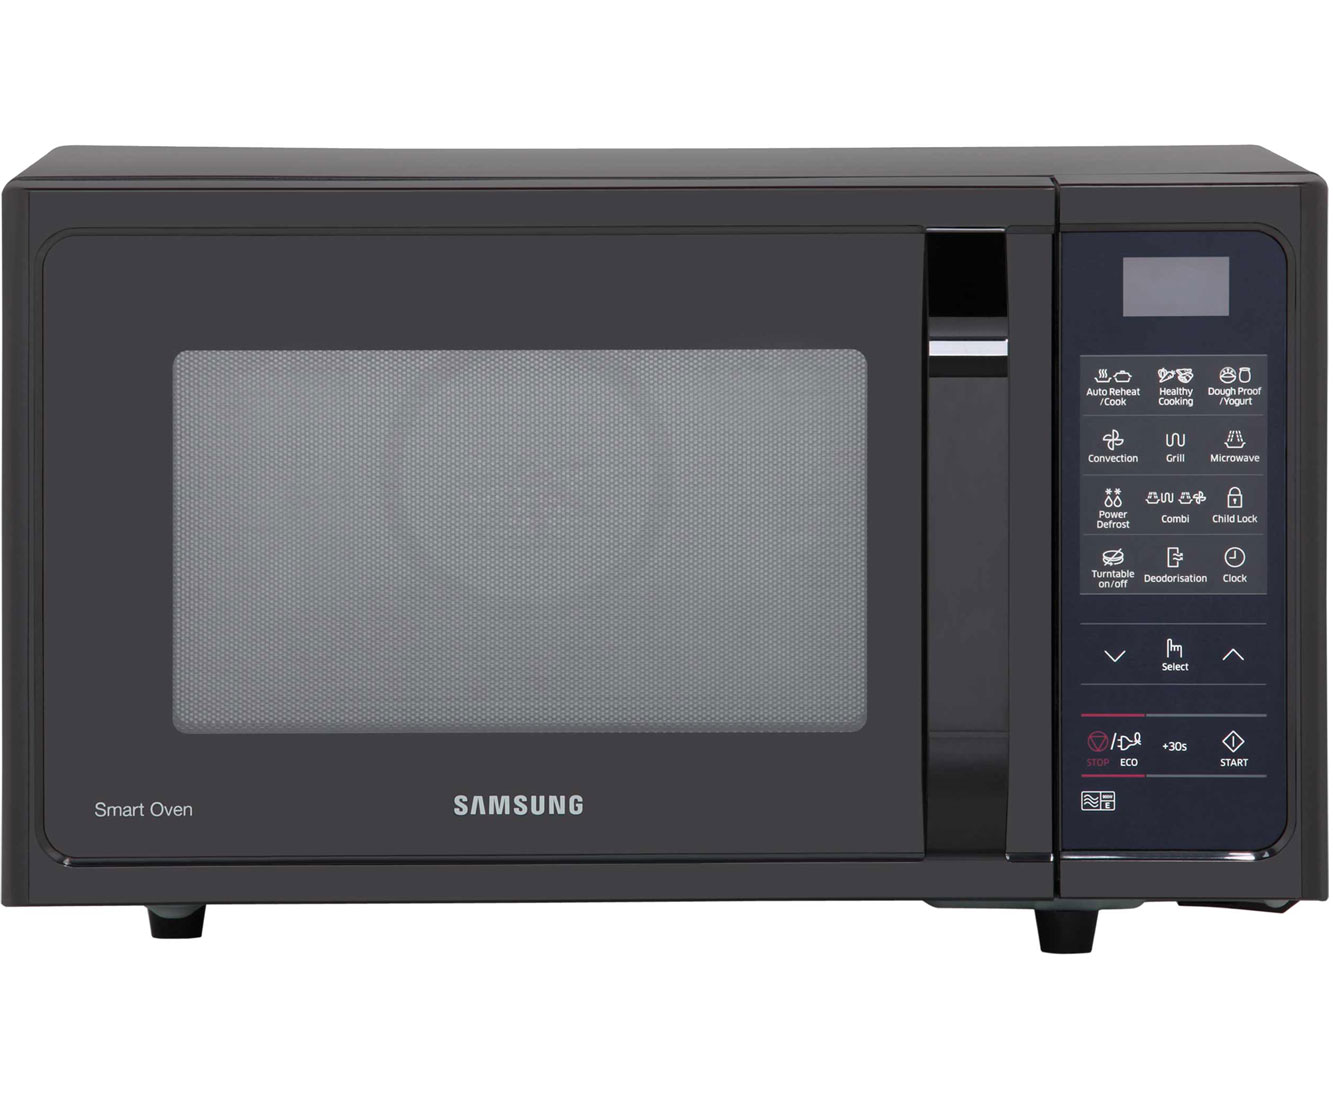 Samsung Smart Oven MC28H5013AK 28 Litre Combination Microwave Oven - Black